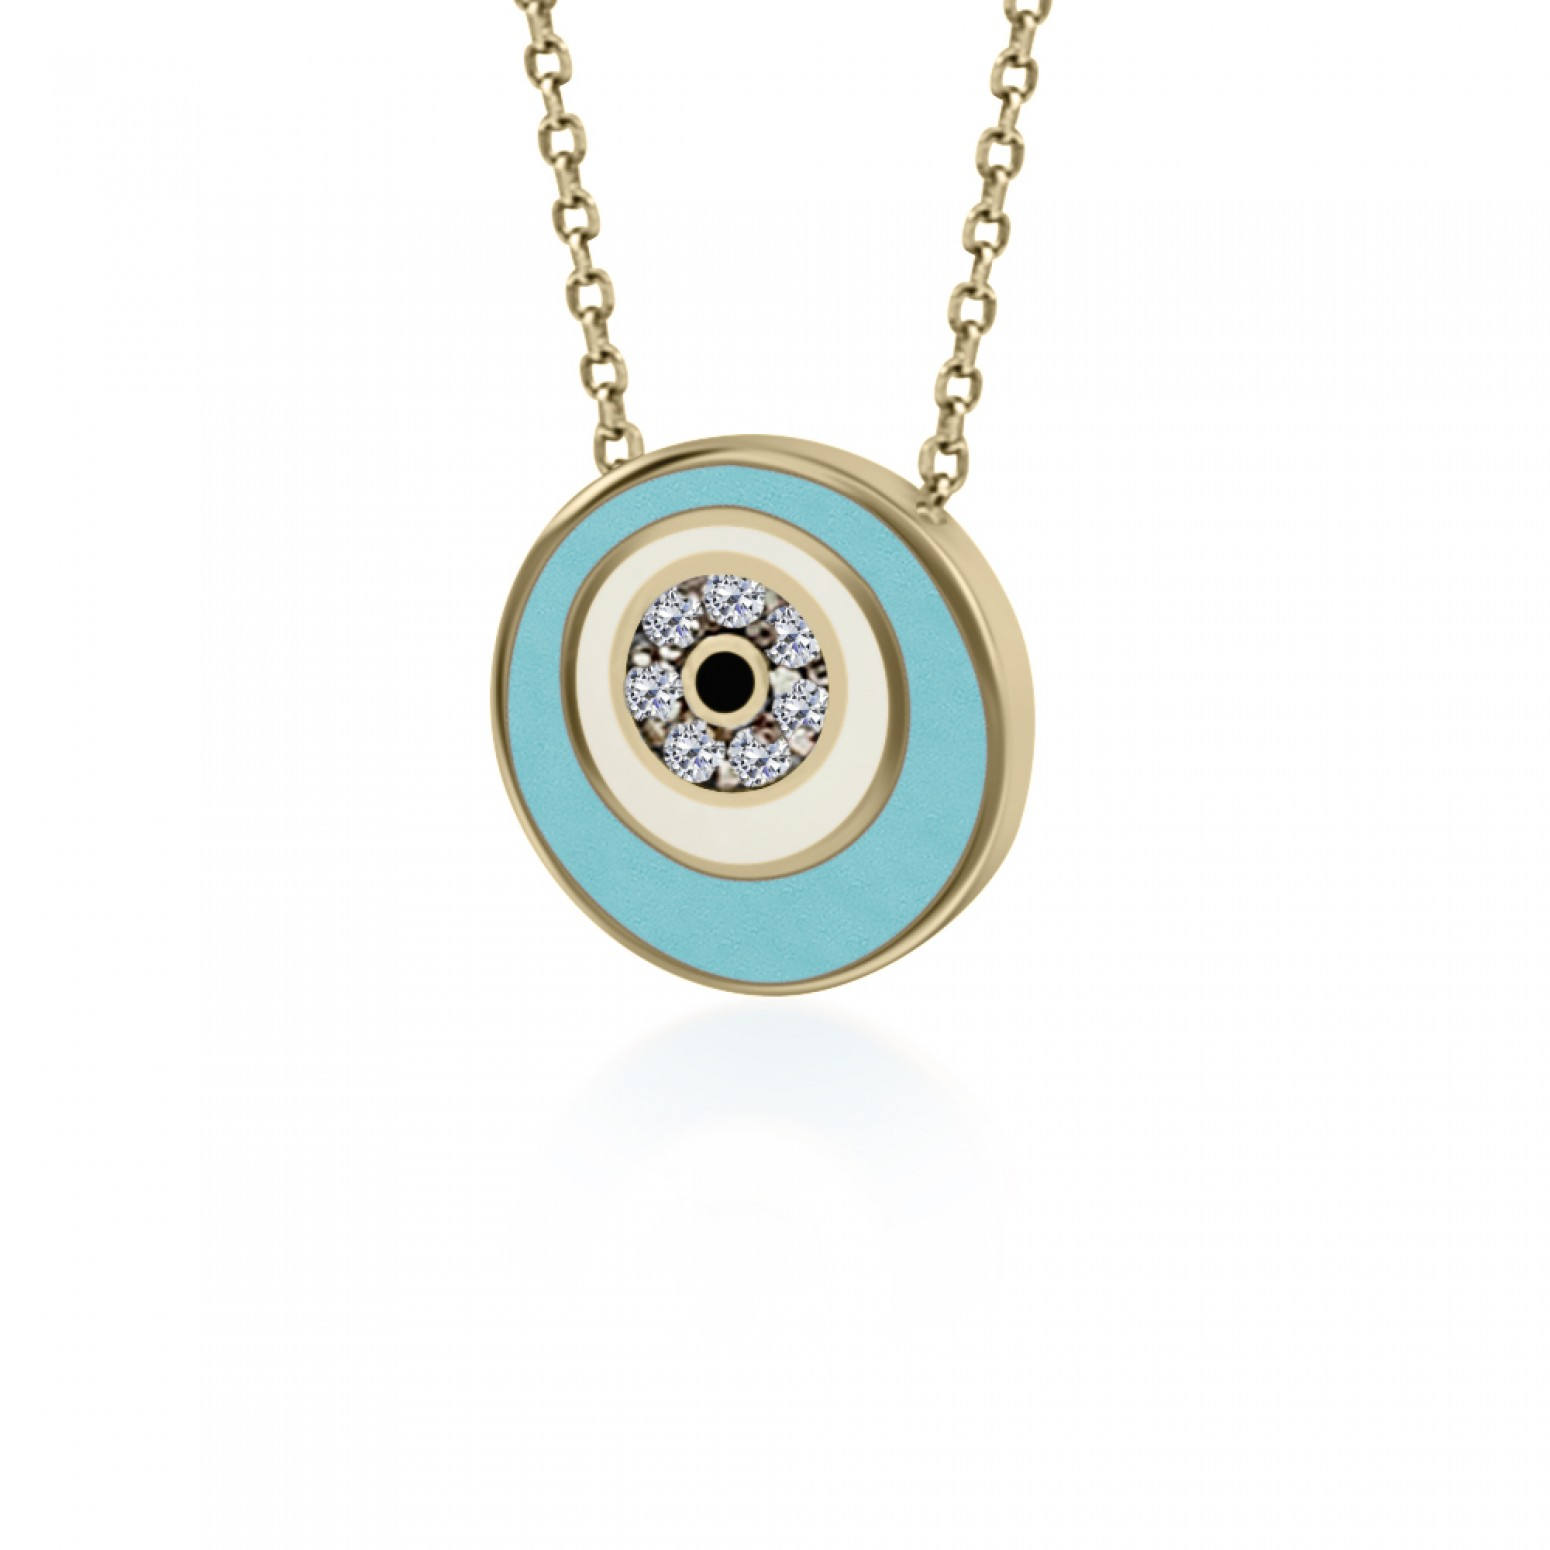 Eye necklace, Κ9 pink gold with zircon and enamel, ko5080 NECKLACES Κοσμηματα - chrilia.gr